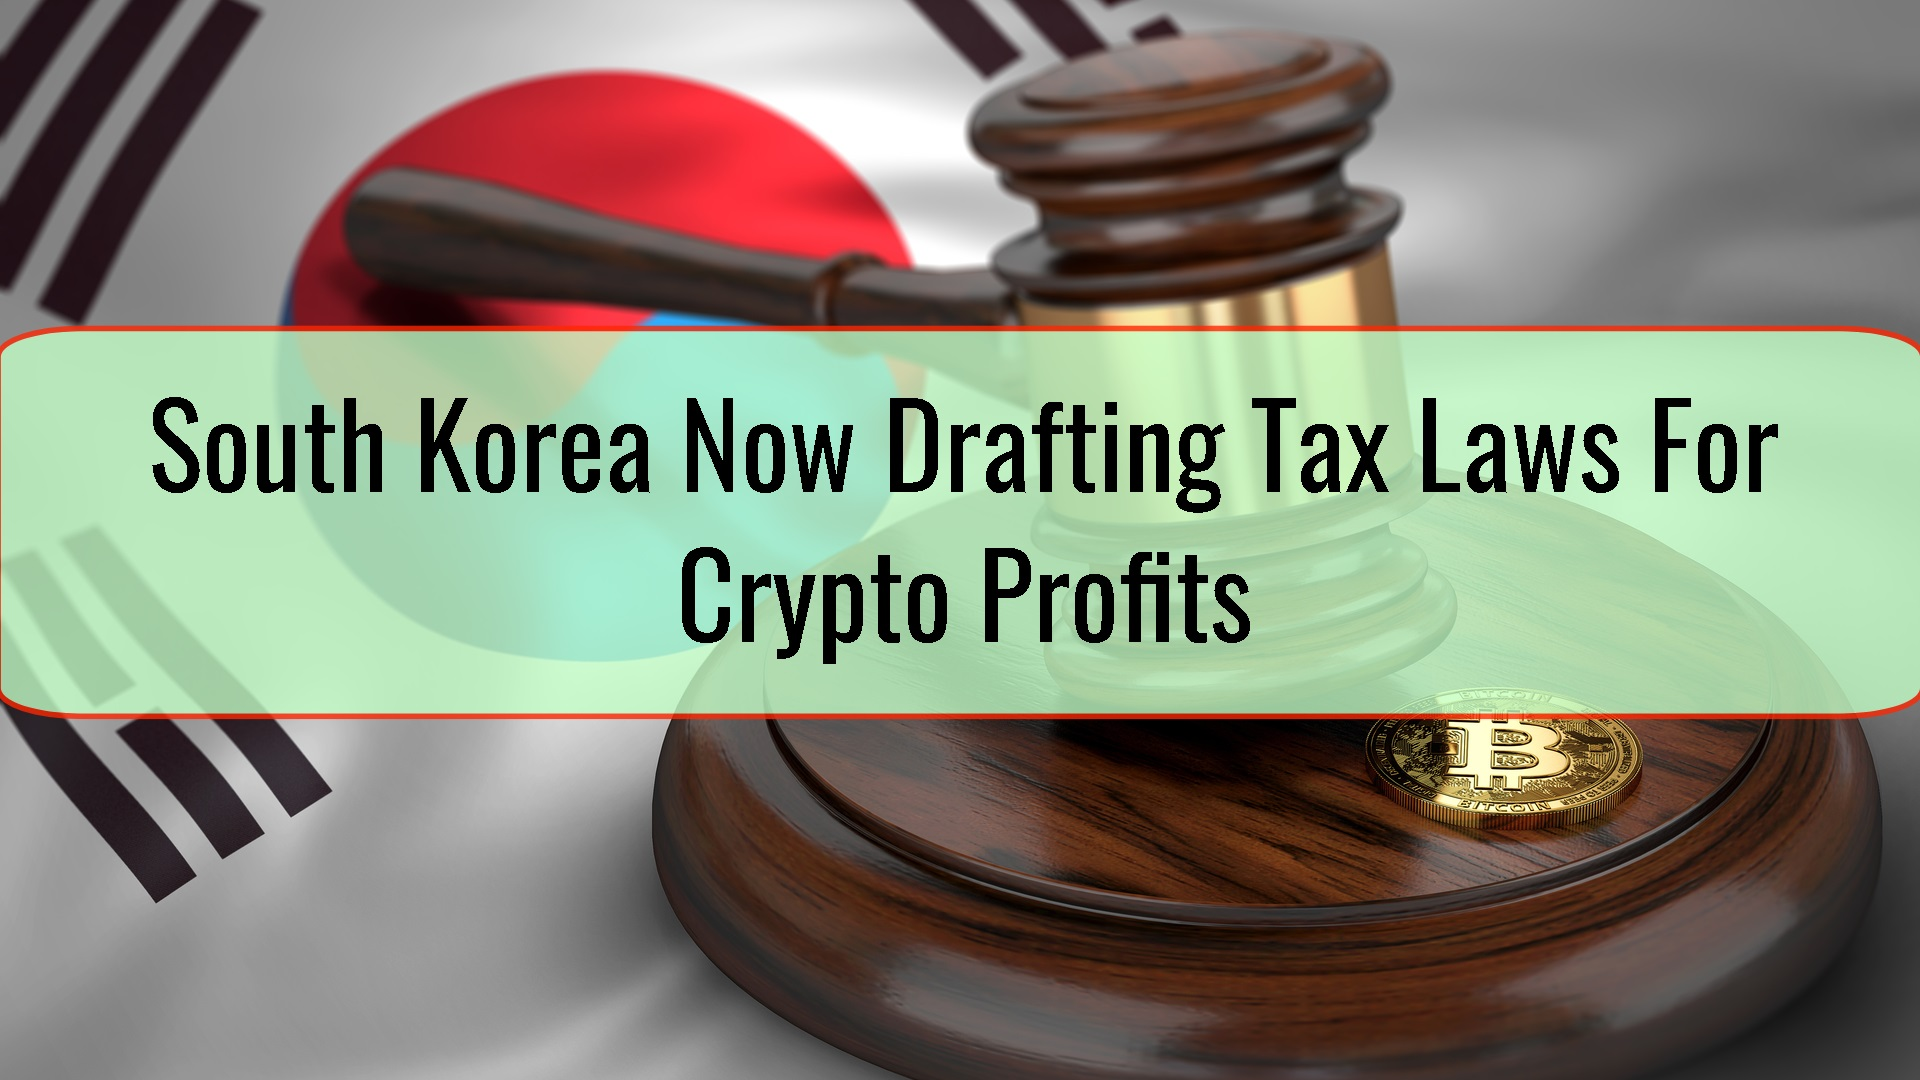 South Korea Now Drafting Tax Laws For Crypto Profits